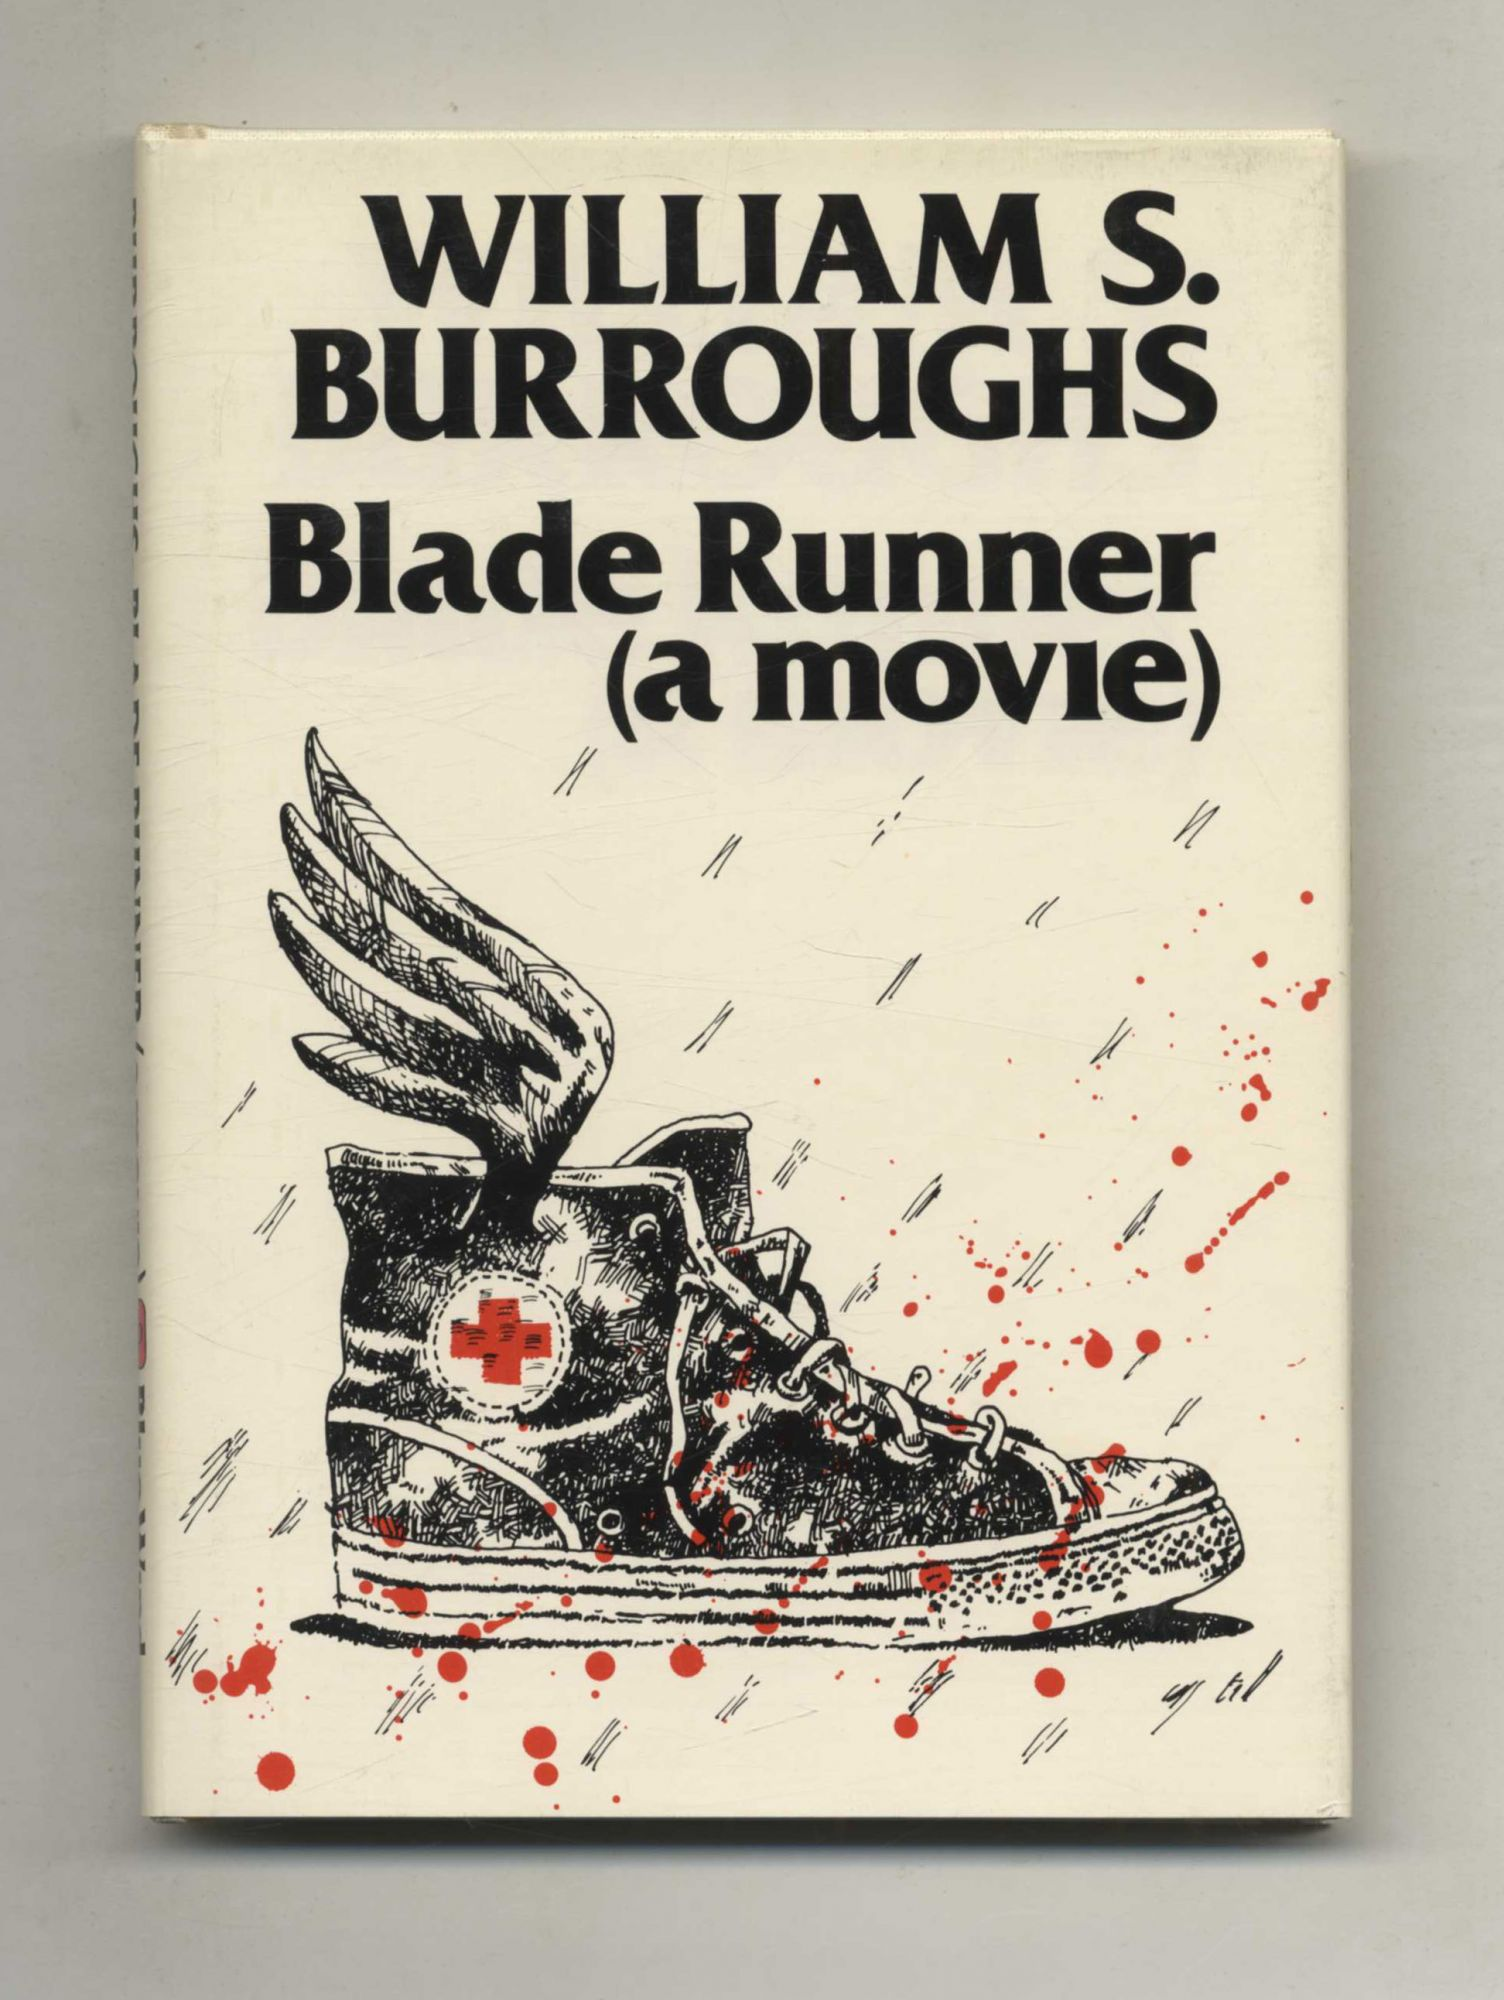 Blade Runner (A Movie) - 1st Edition/1st Printing. William S. Burroughs.